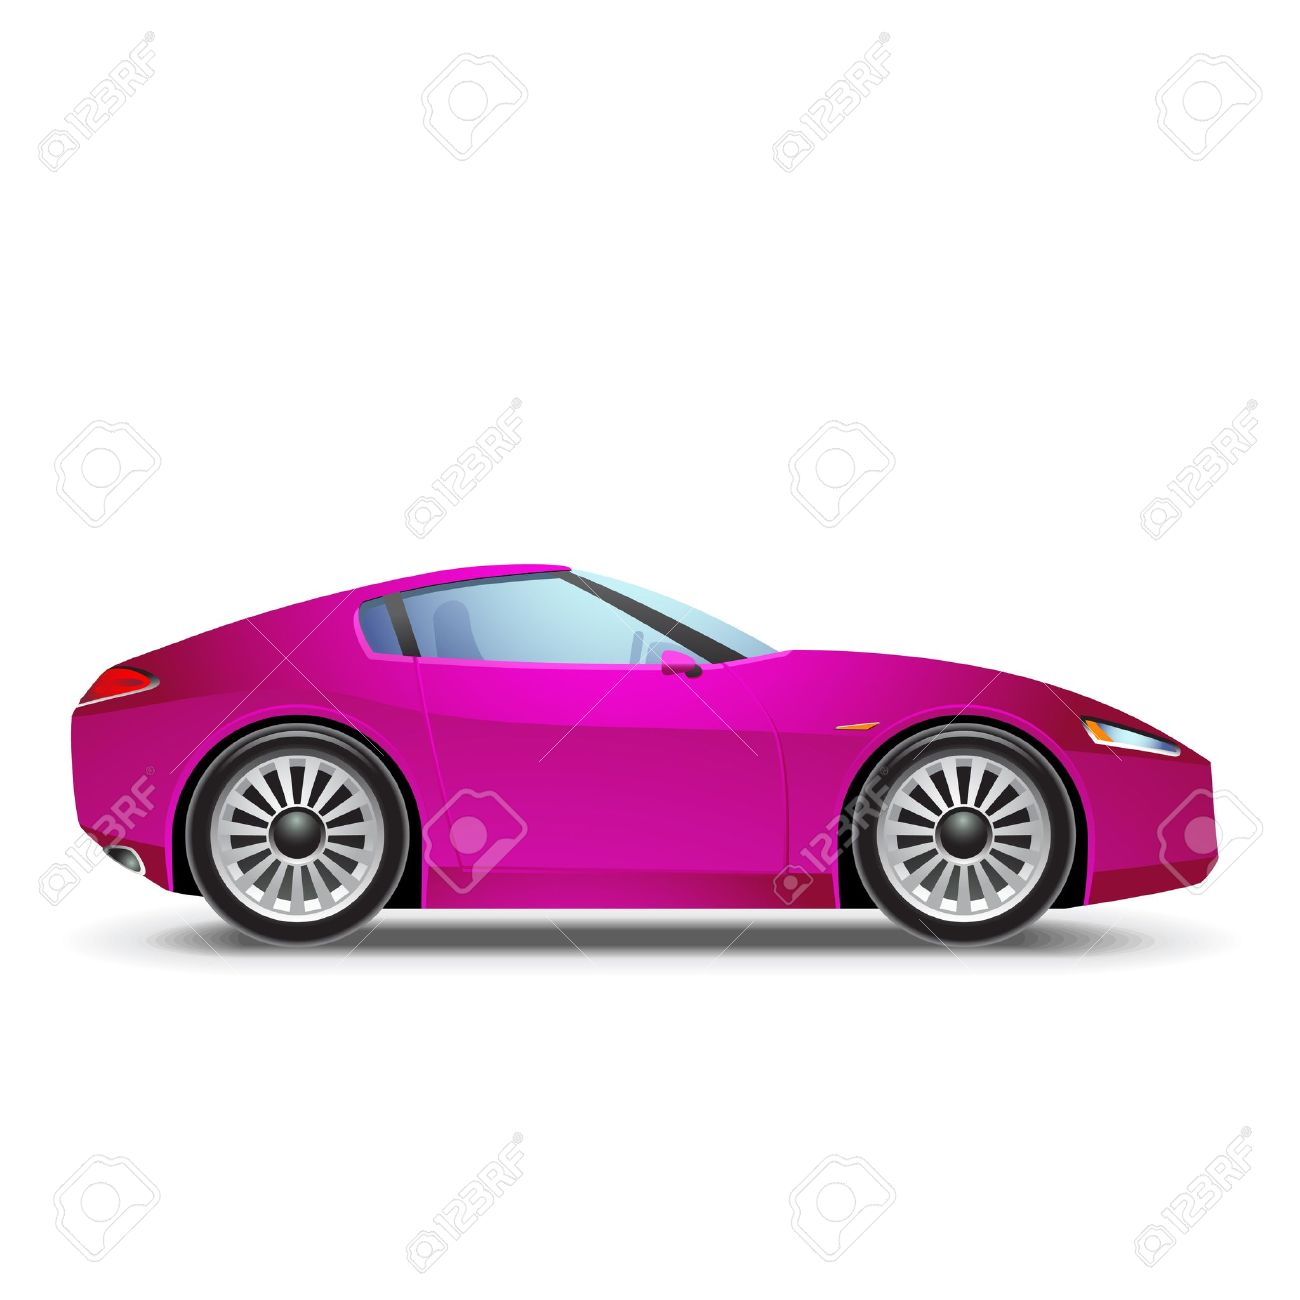 Cartoon Race Car Stock Vector Illustration And Royalty Free